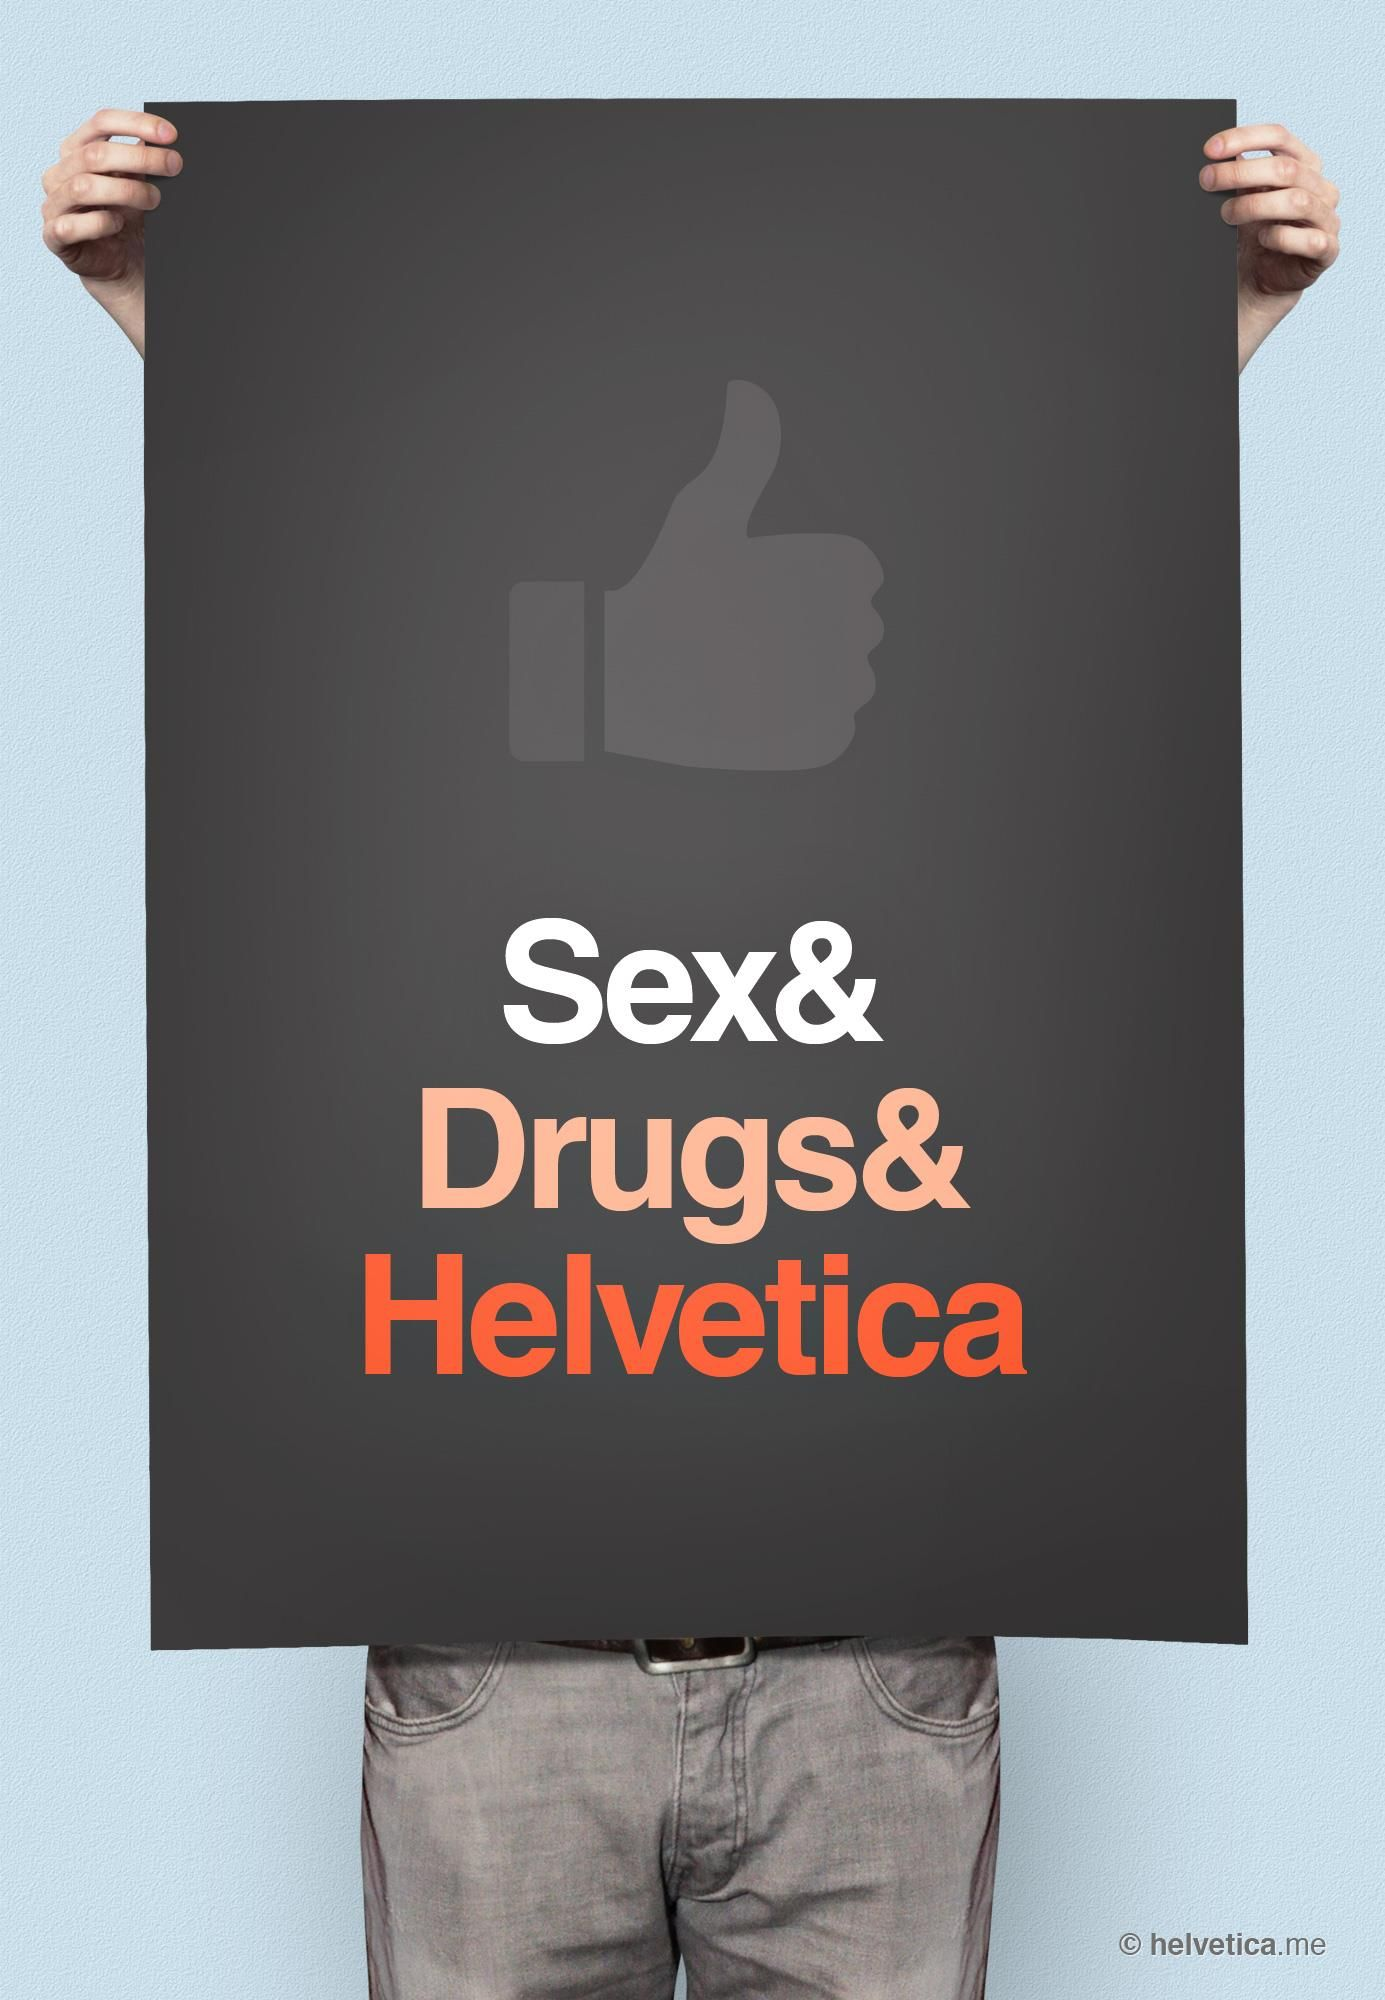 Helvetica is the font, it is designed by Paul Renner. i like this ...